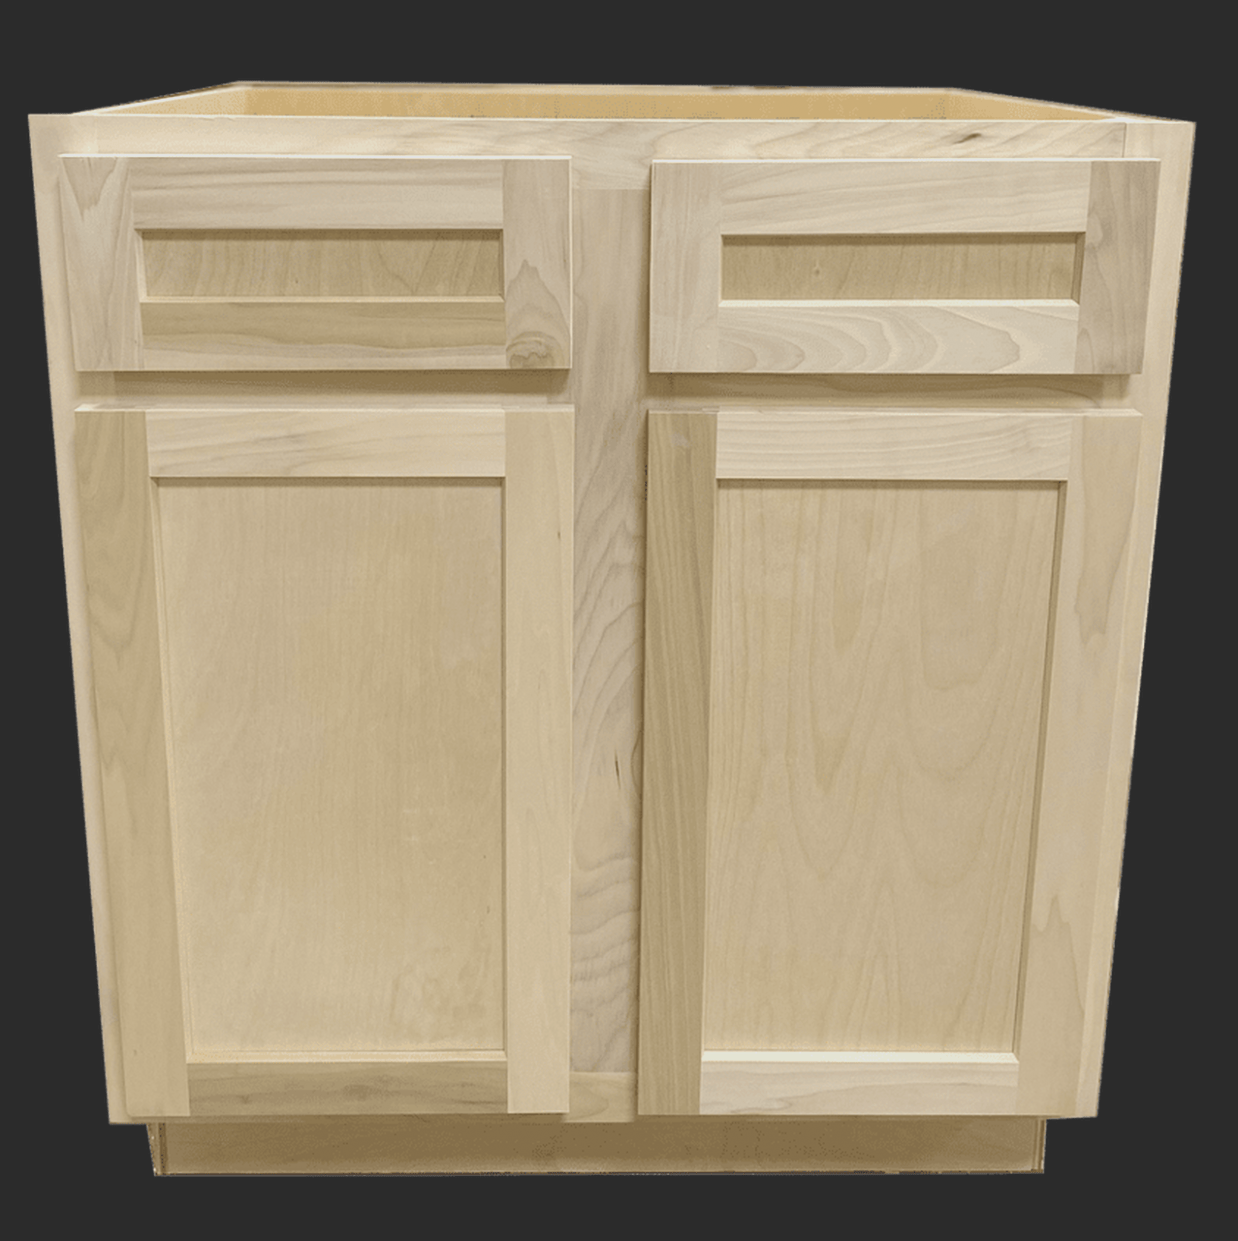 1 Kitchen Base Cabinet